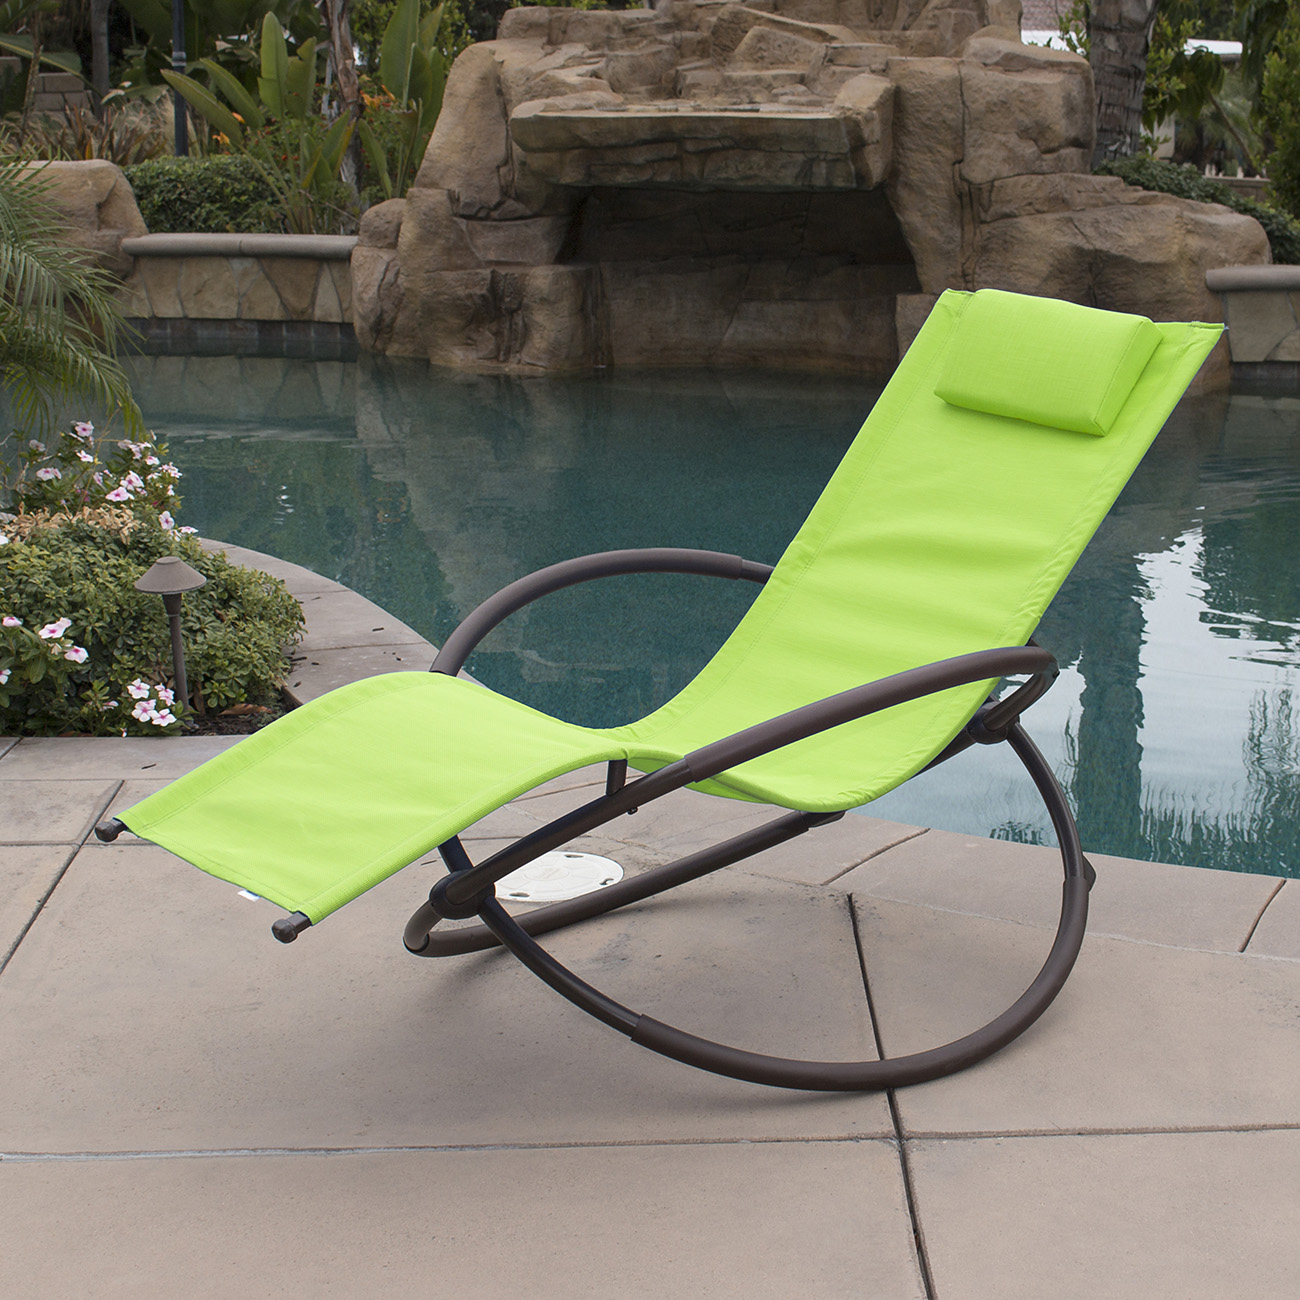 anti gravity lawn chair small rocking chairs for nursery 7 color orbital zero lounge beach pool